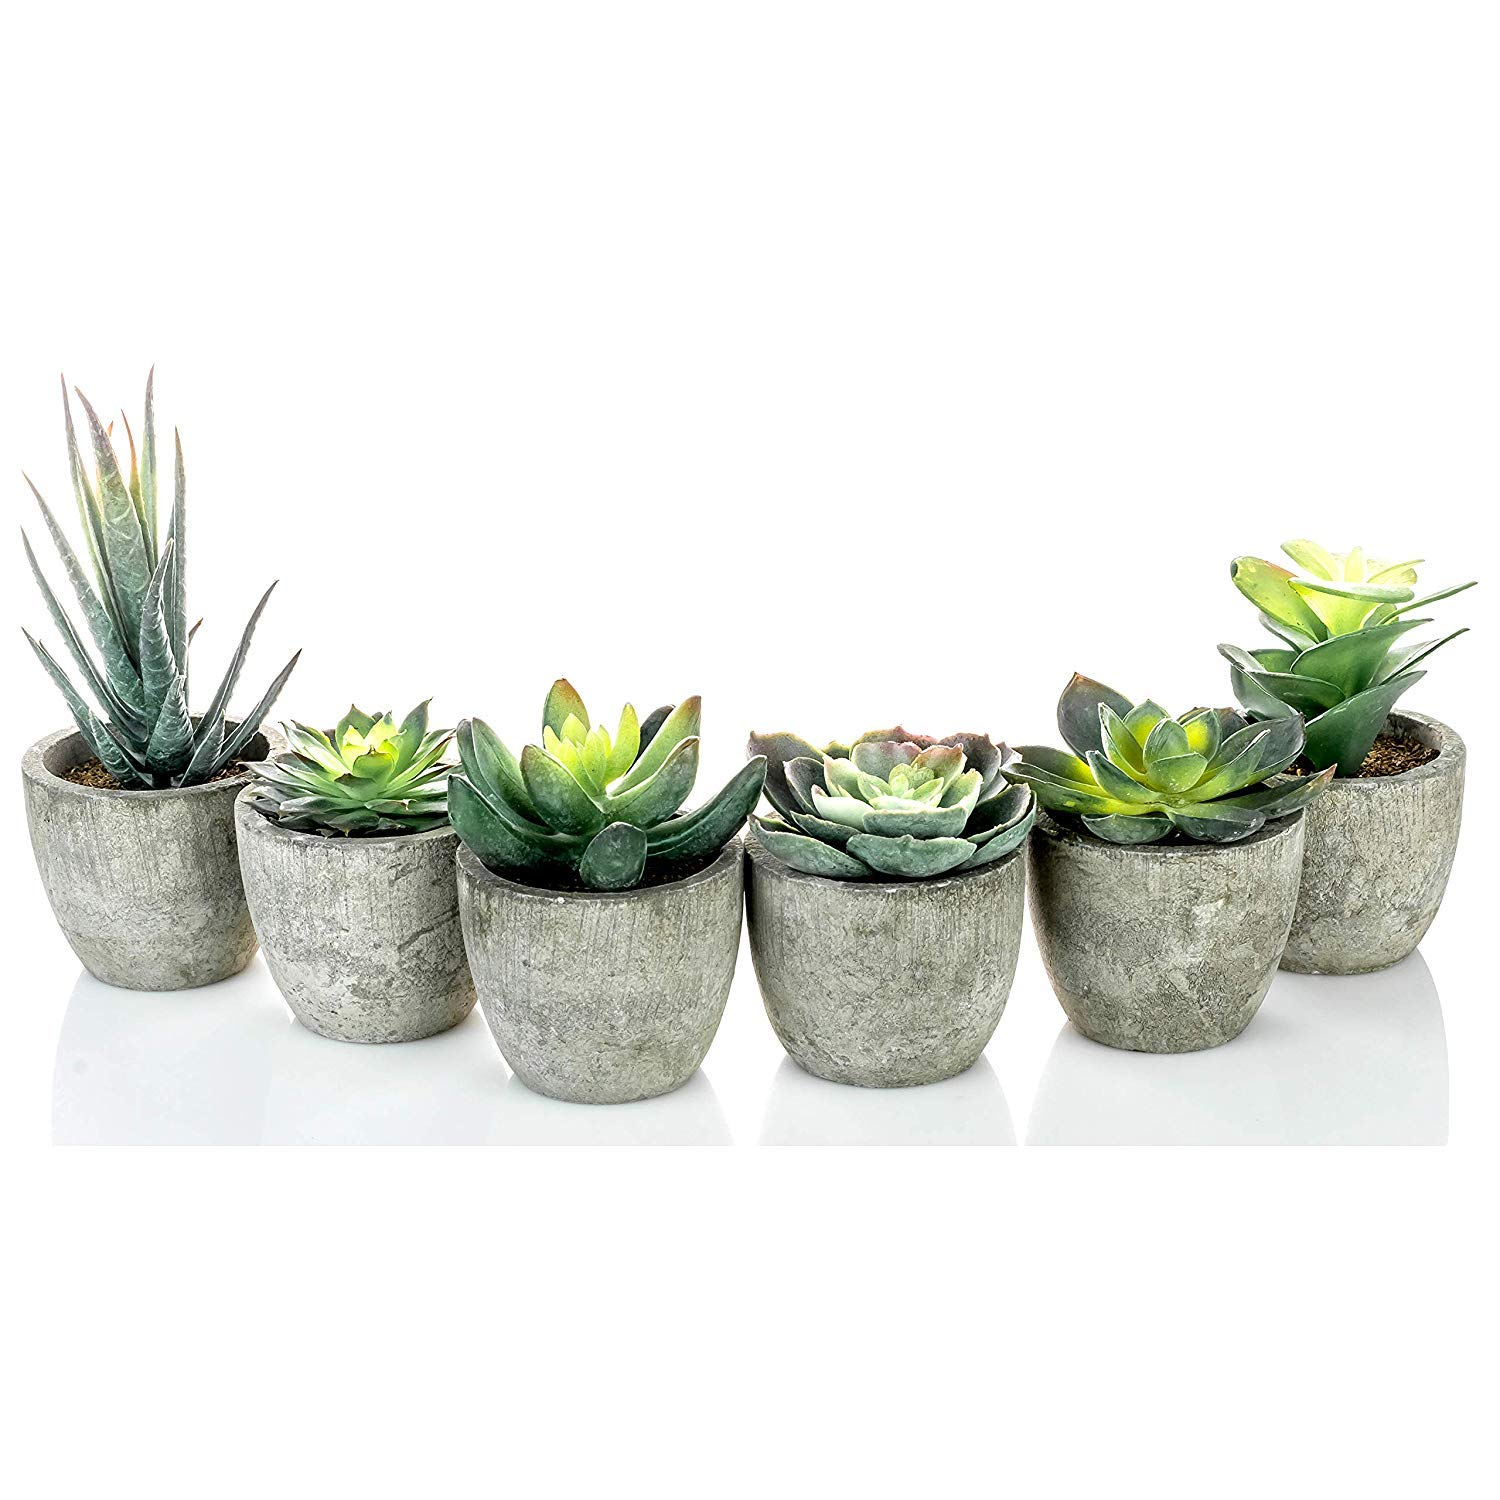 6 Pots Small Artificial Succulent Plants Mini Fake Faux Suculentas Pot For Shelf Kitchen Counter Office Decor Tiny Miniature Desk Plant Succulents Decoration Accessories Potted Plastic Cactus Aloe